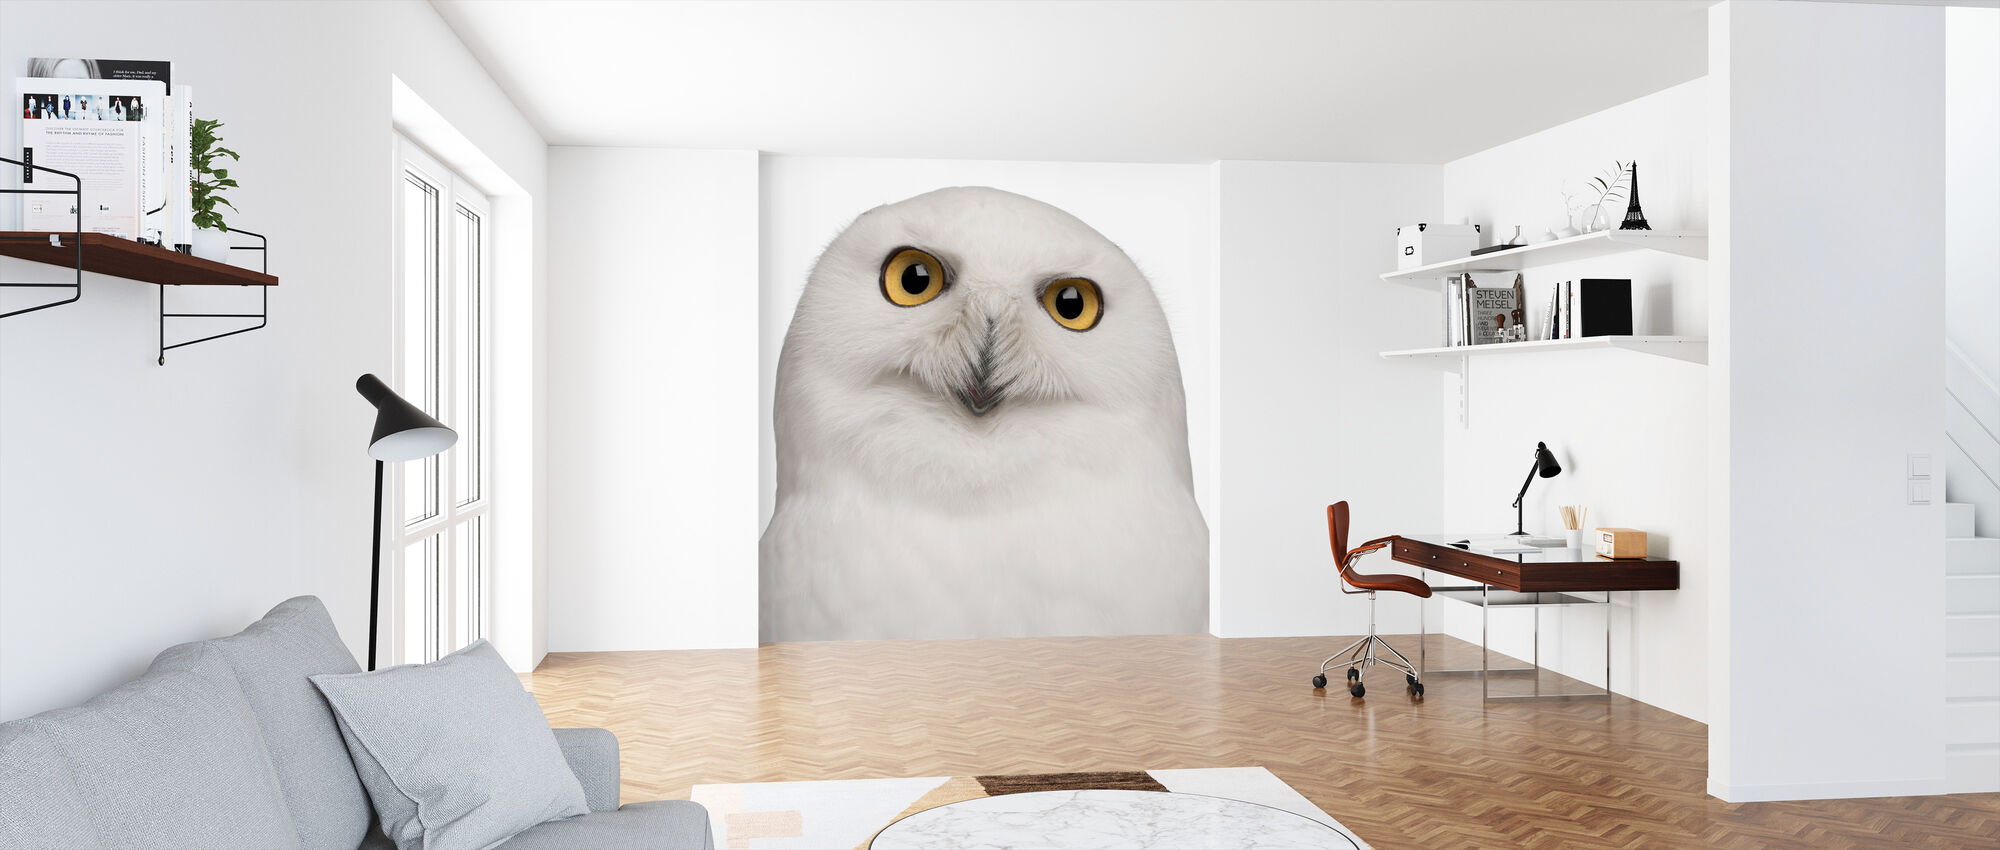 Snowy Owl Decorate With A Wall Mural Photowall